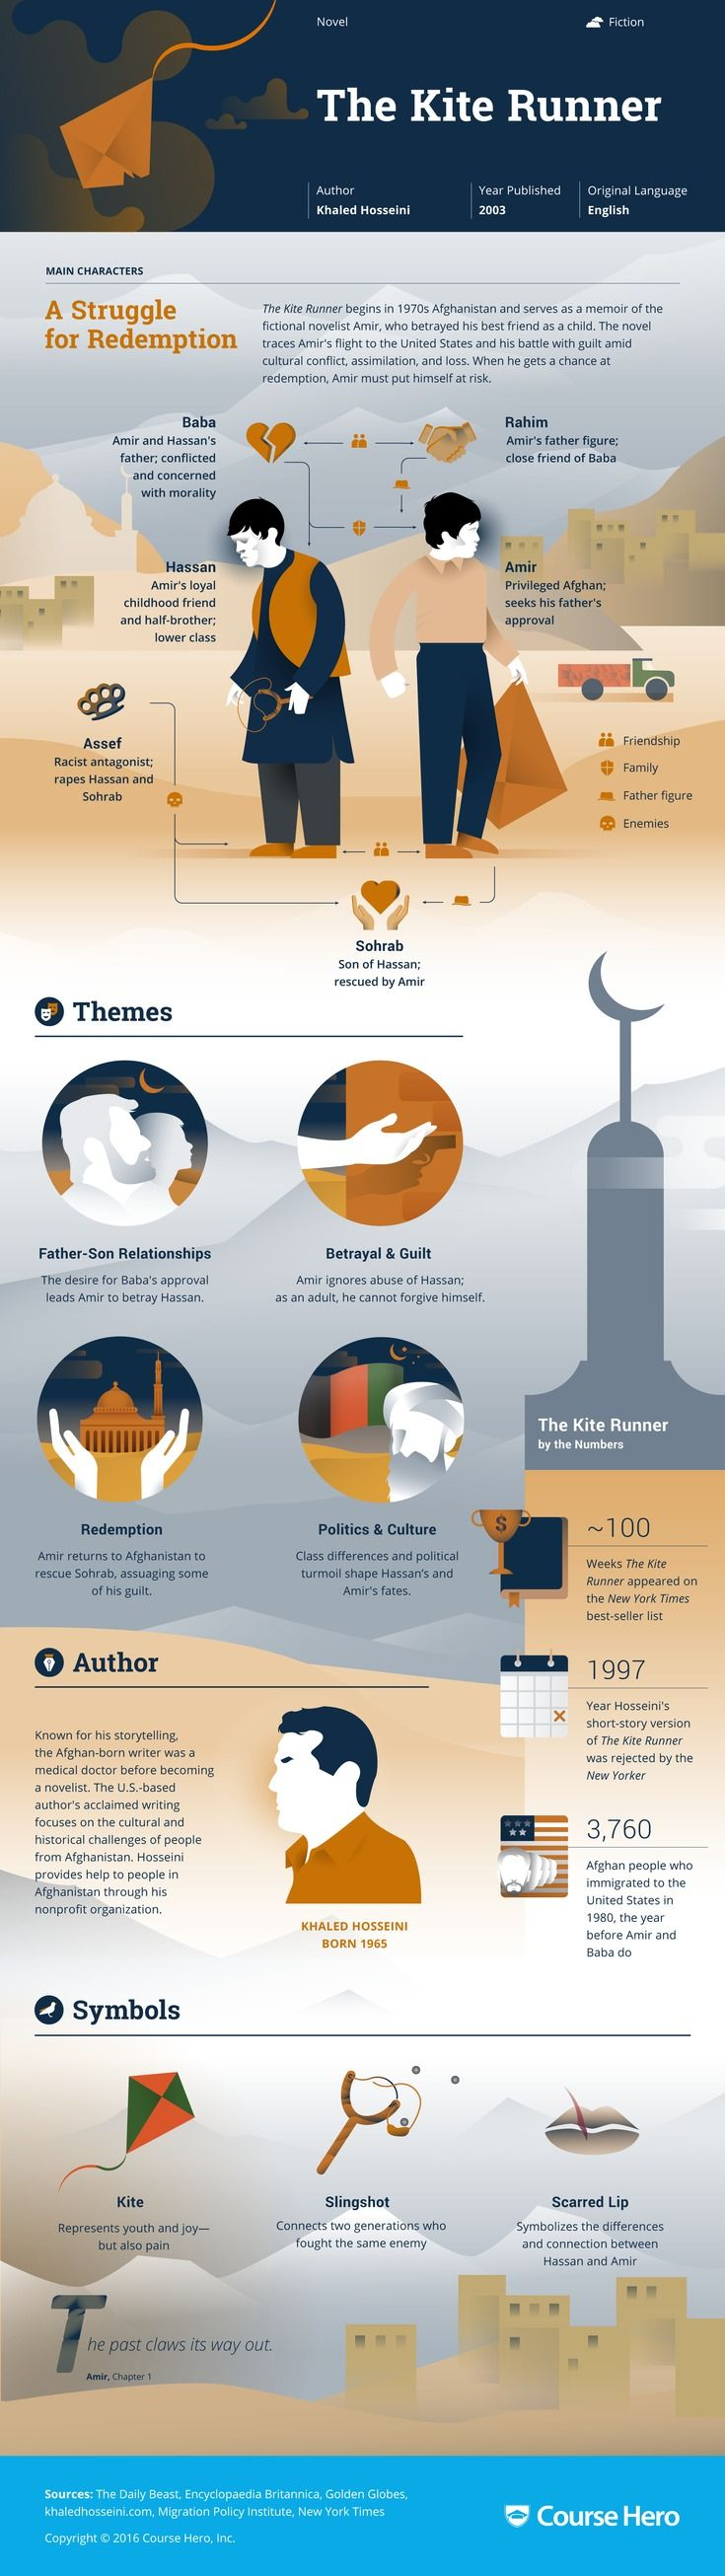 17 best ideas about the kite runner film the kite this coursehero infographic on the kite runner is both visually stunning and informative